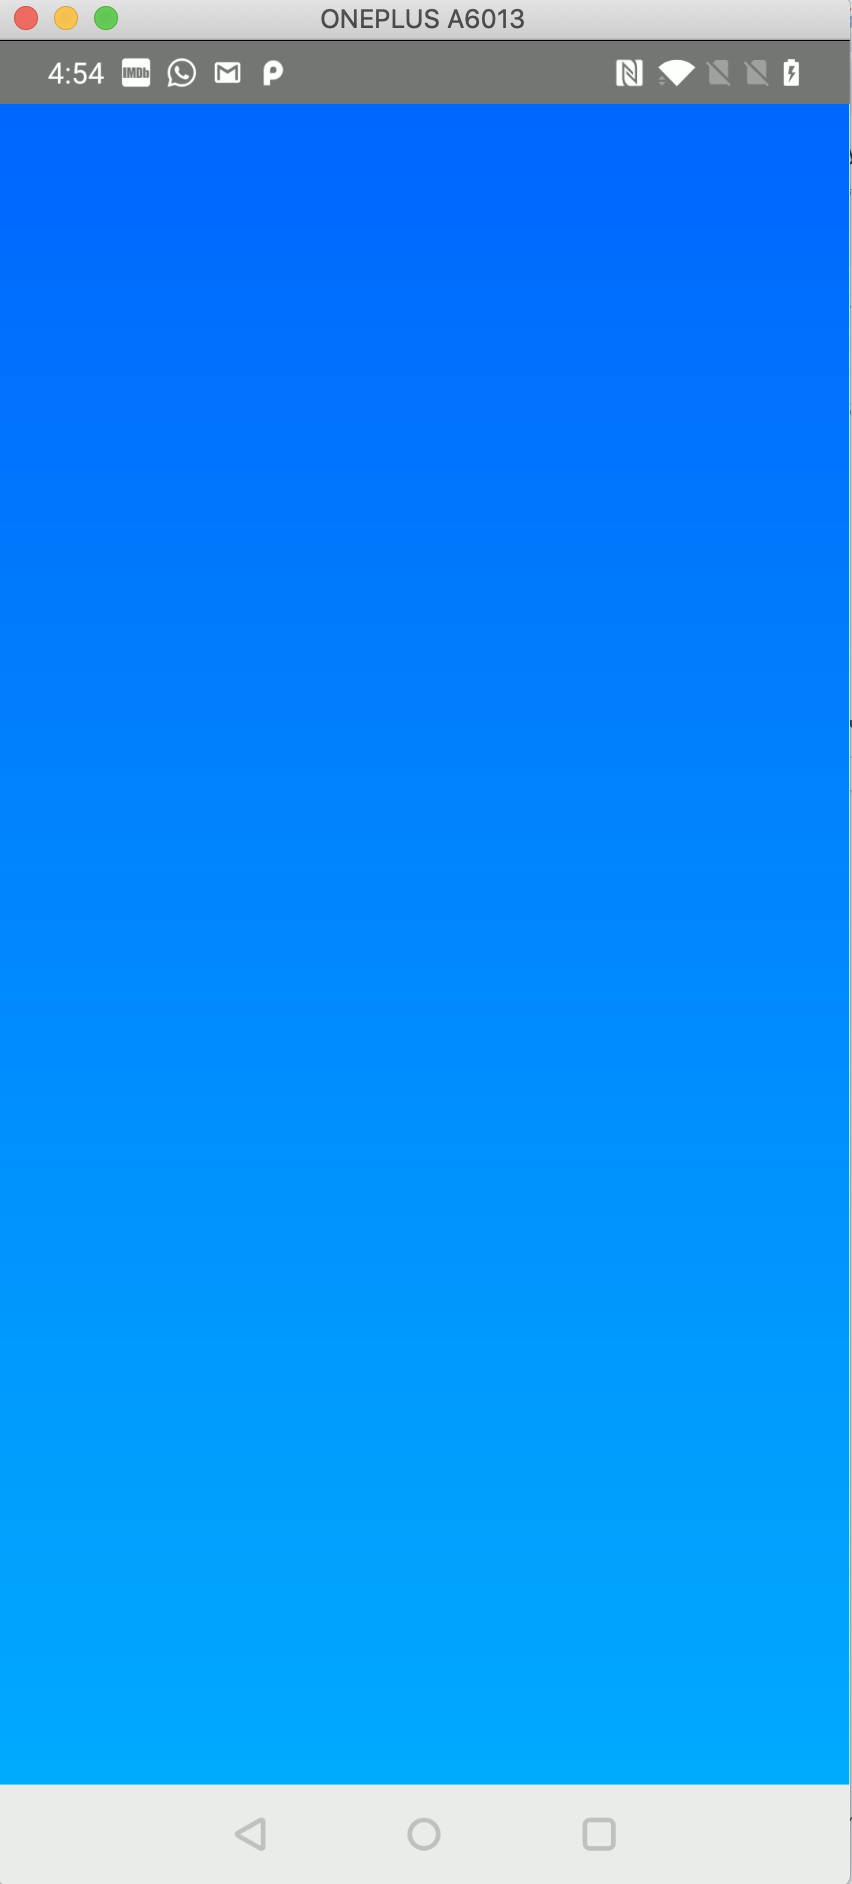 color banding on android · Issue #1065 · react-native